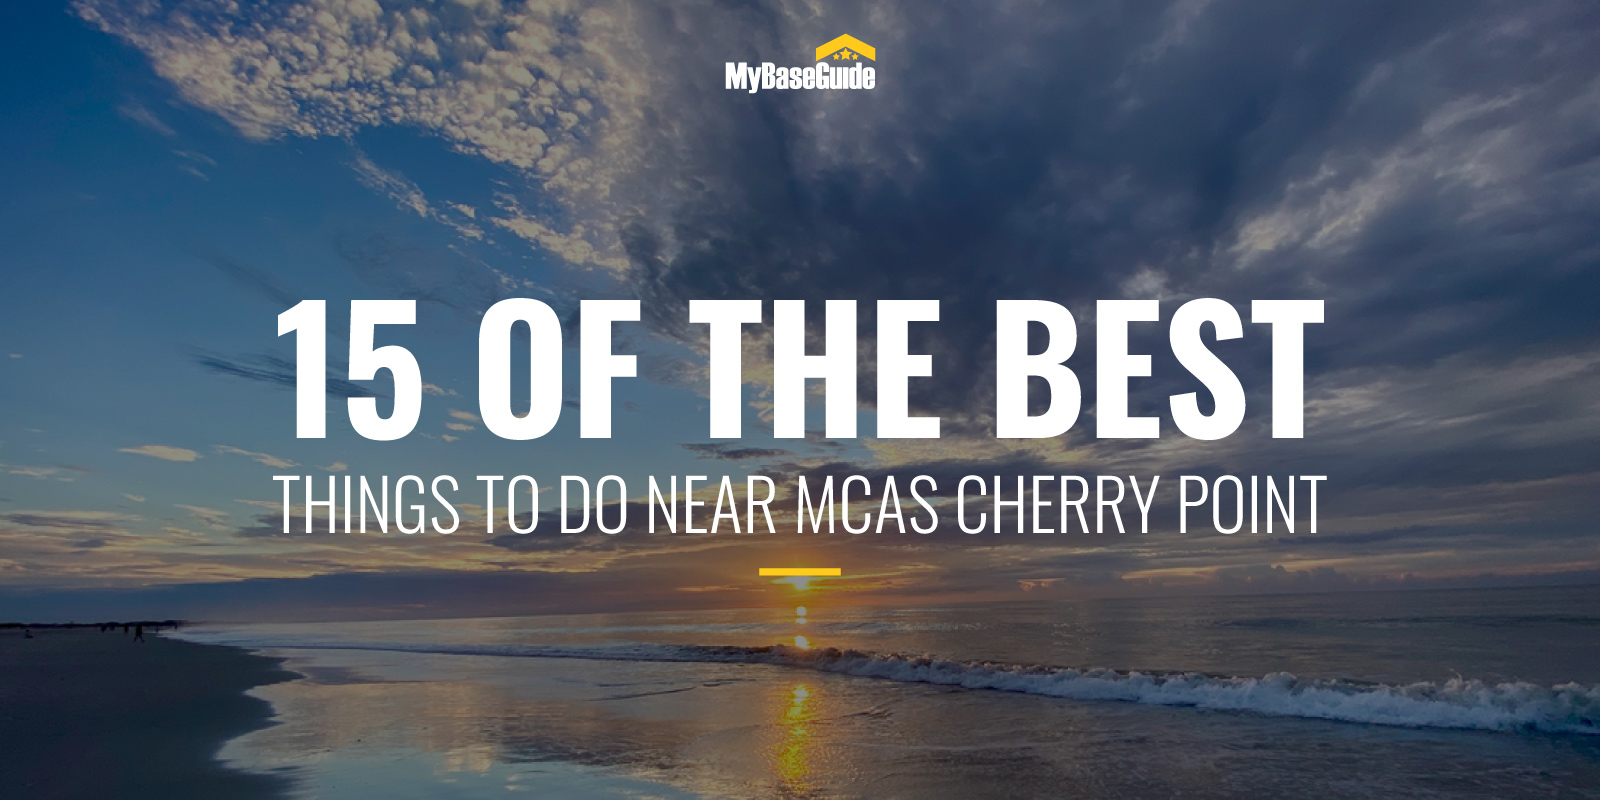 15 Of the Best Things to Do Near MCAS Cherry Point